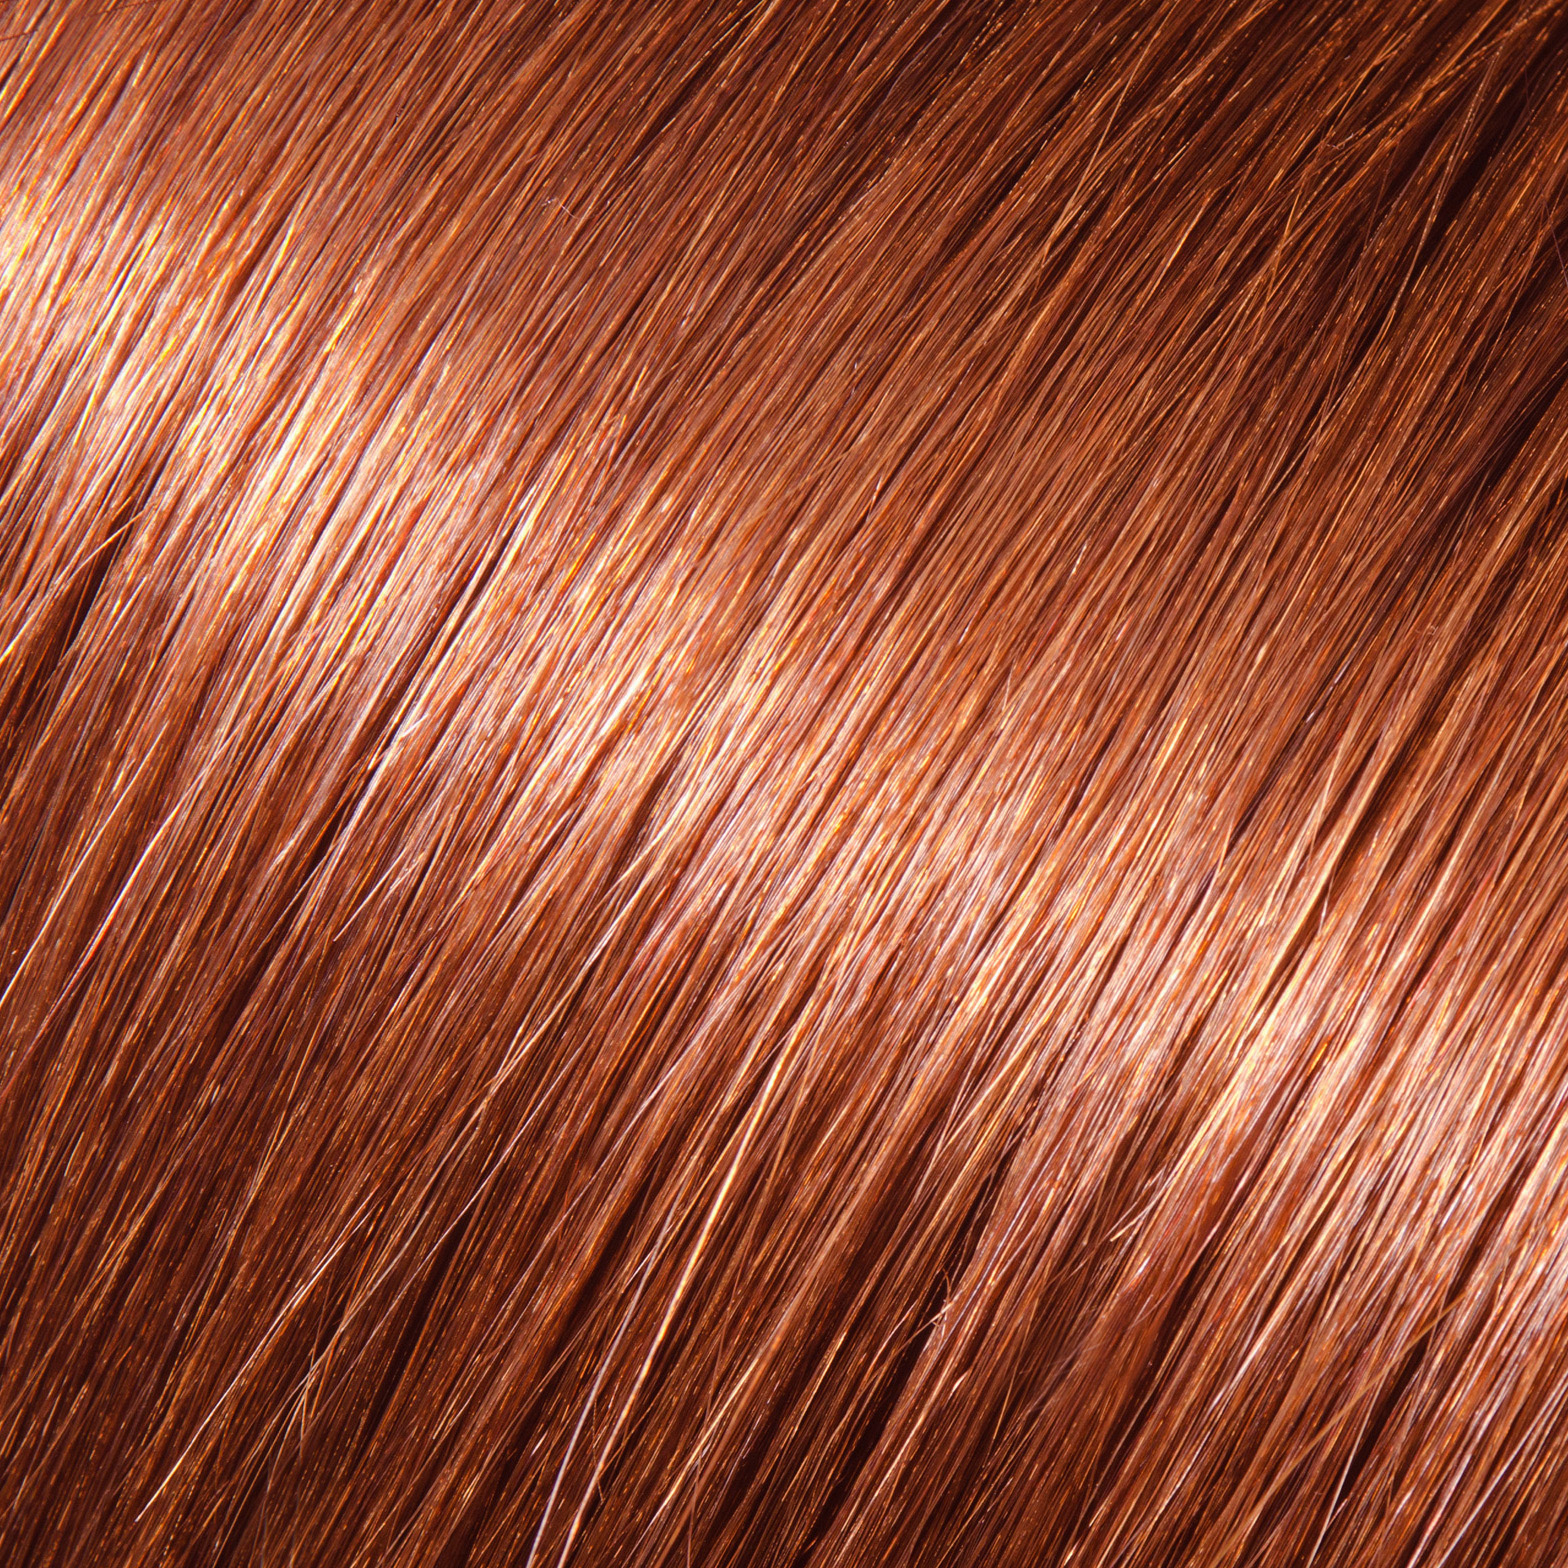 Hair Color Chart For Natural Hair Dye Find The Color That